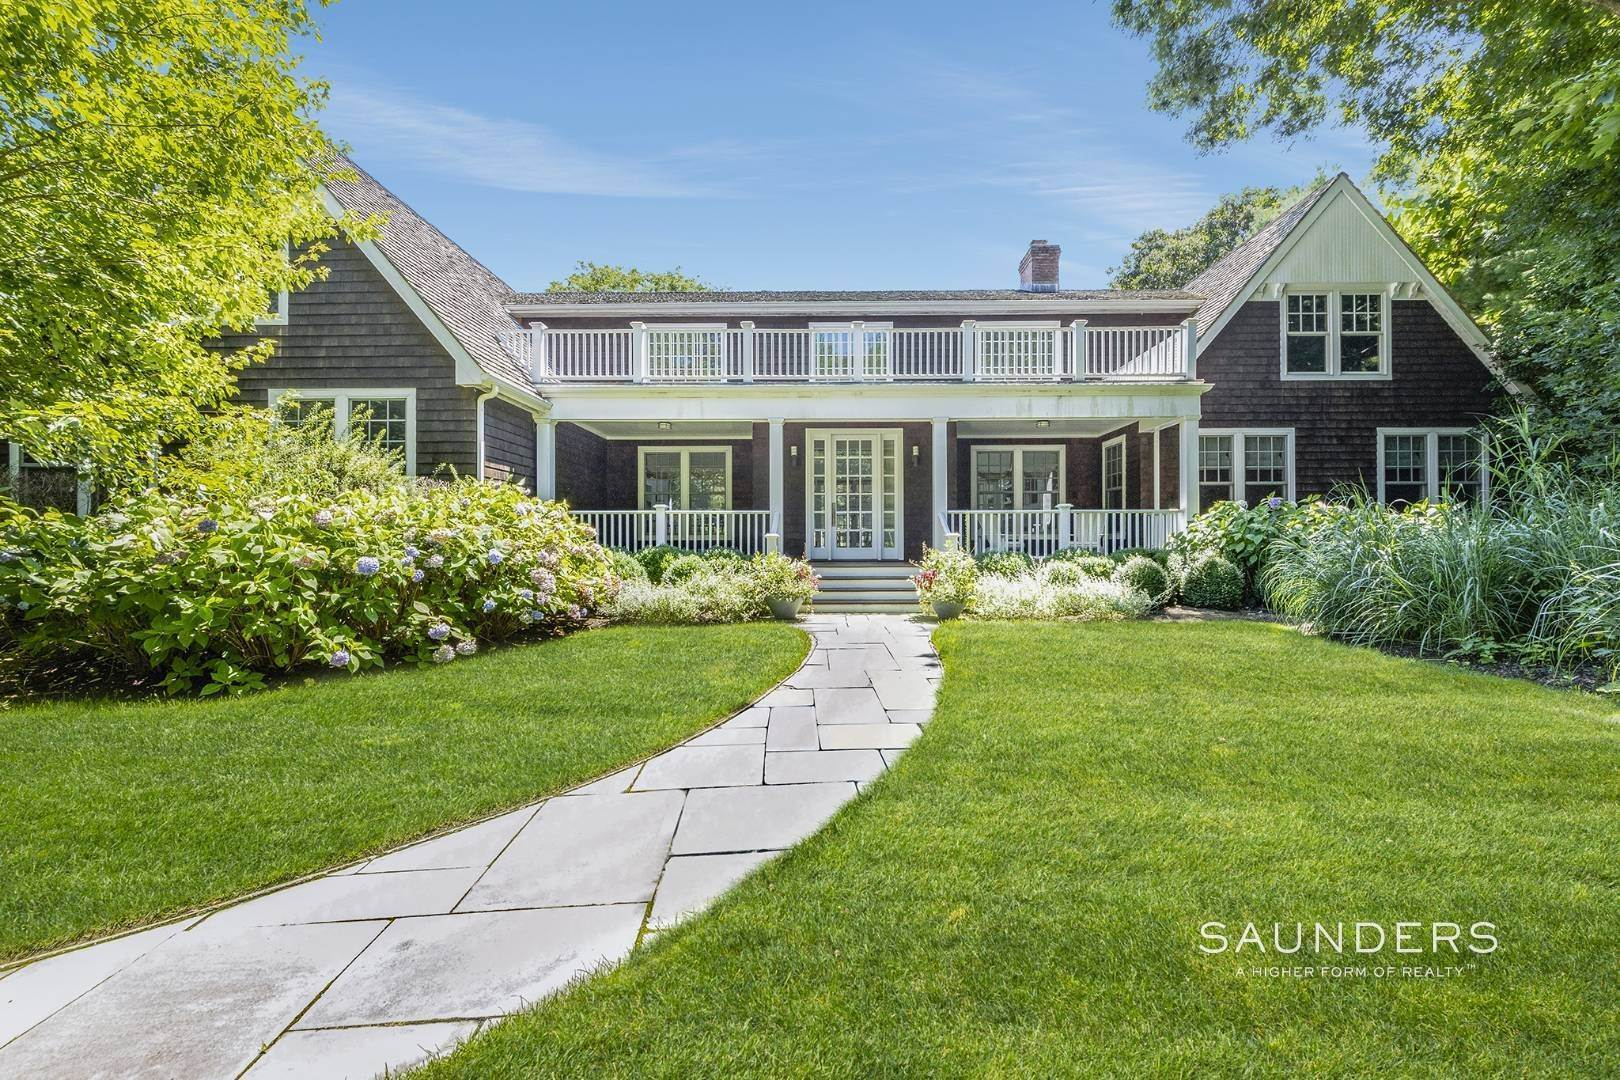 2. Single Family Homes for Sale at Wainscott South Traditional Near Beach Lane 10 Merriwood Drive, Wainscott, East Hampton Town, NY 11975